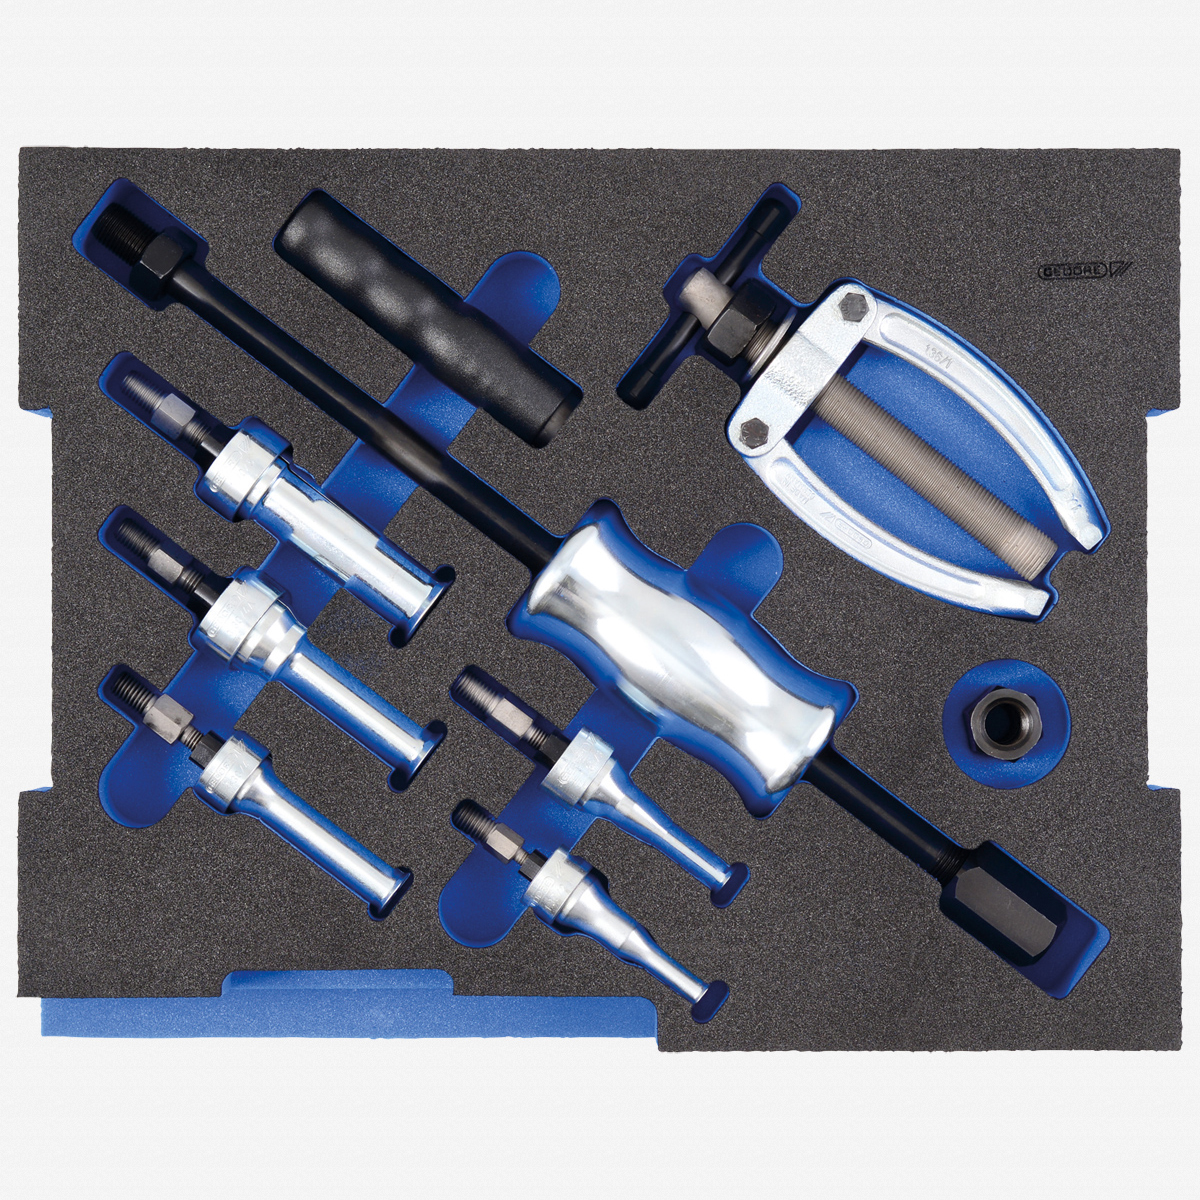 Gedore 1100 CT2-1.30 Internal extractor assortment, in 2/2 L-BOXX 136 Module - KC Tool